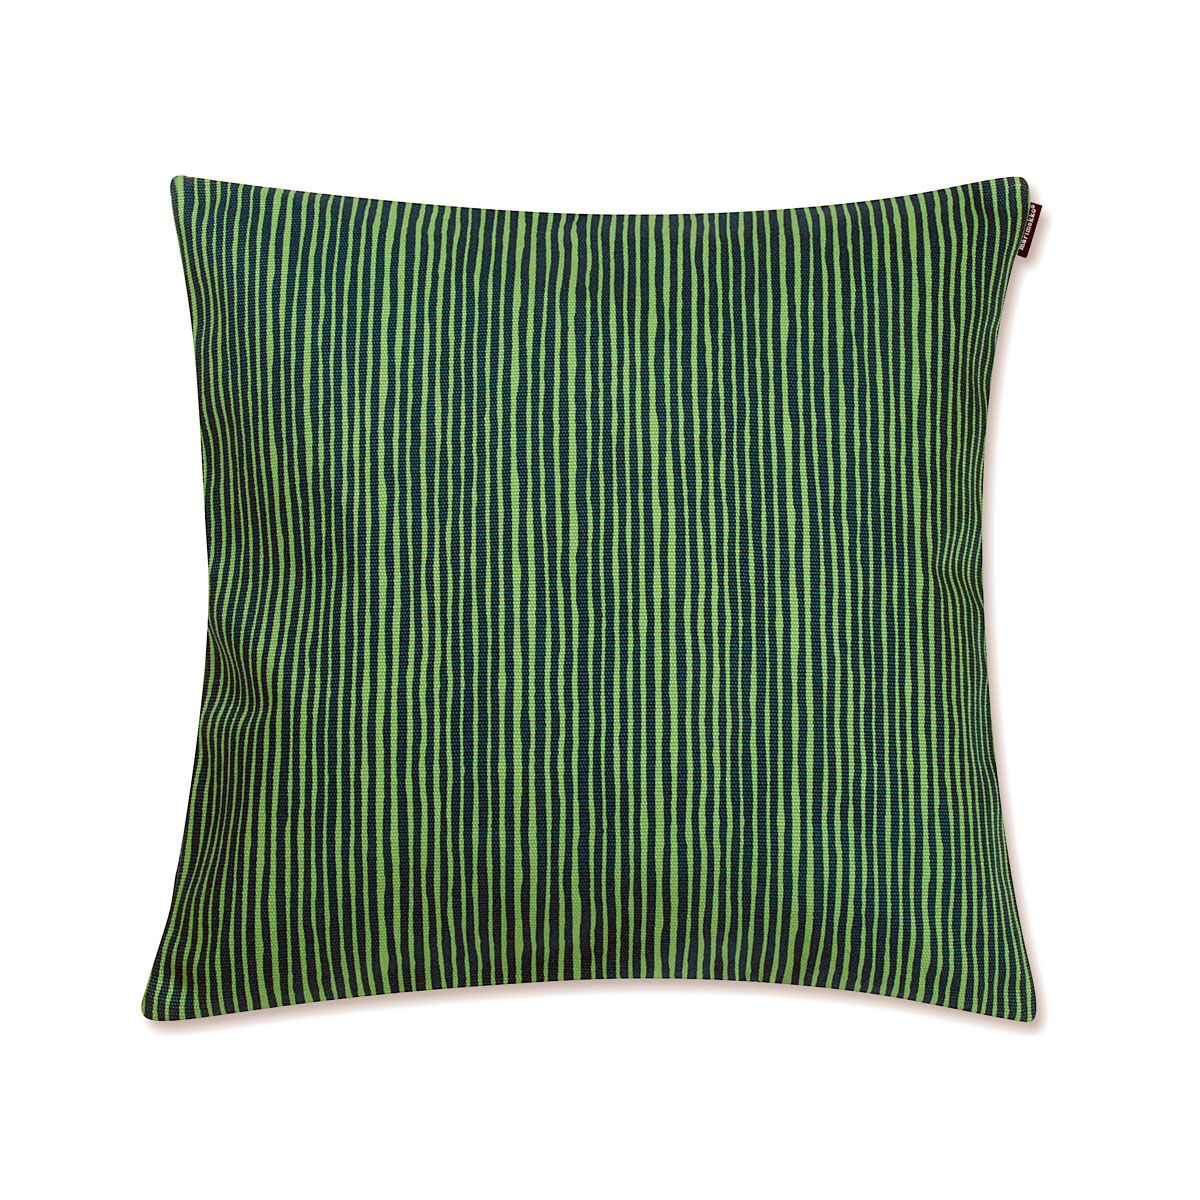 Small Green Decorative Pillow : Marimekko Varvunraita Green Heavyweight Small Throw Pillow - Marimekko Fabric & Throw Pillow Sale